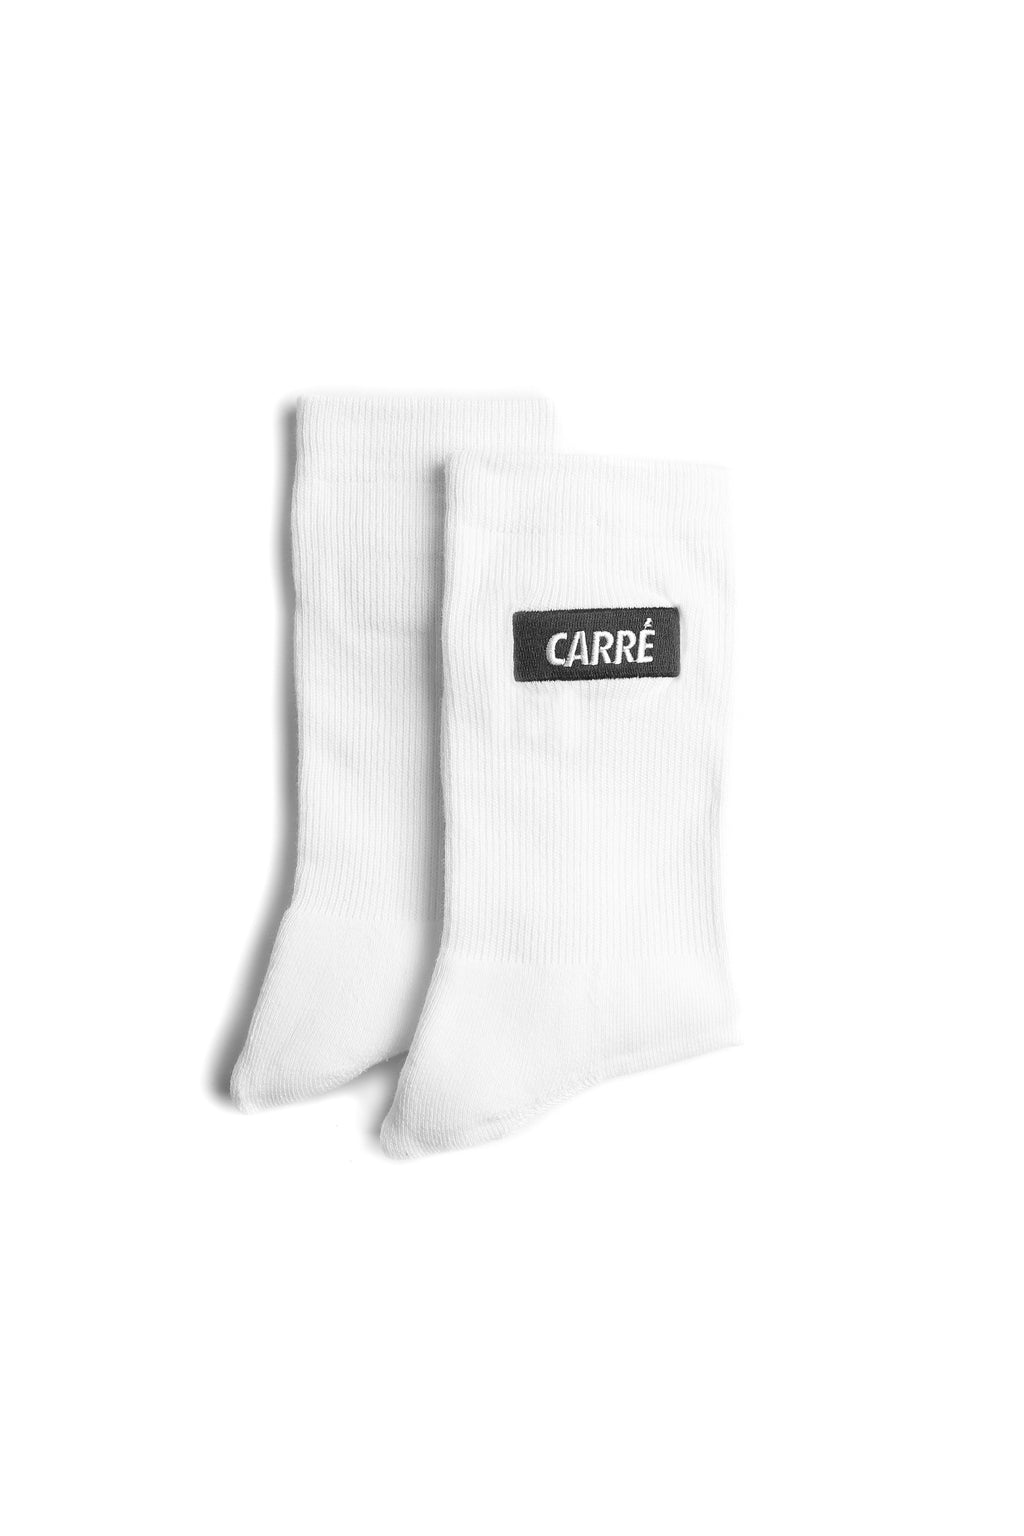 Carré Incline Socks White